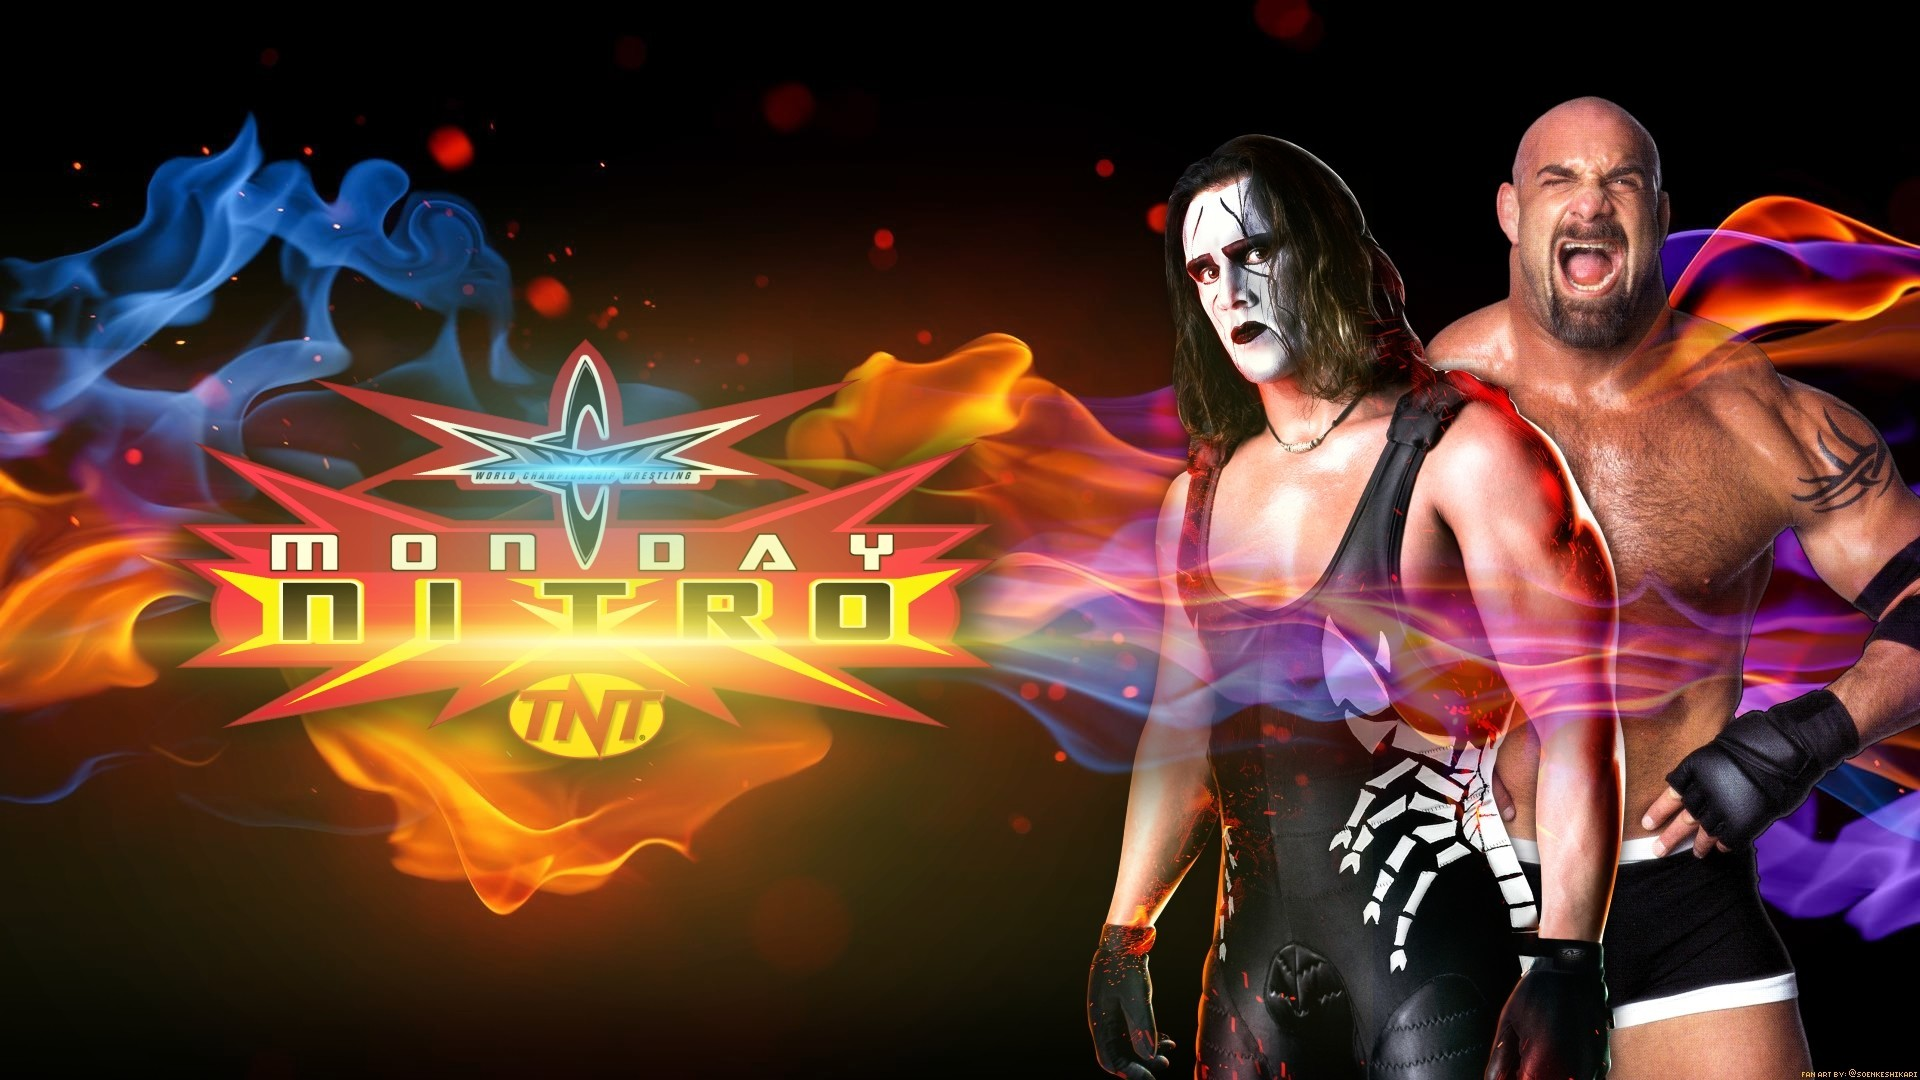 1920x1080 Sting WCW Wallpapers - WallpaperSafari .  Sting WCW  Wallpapers - WallpaperSafari